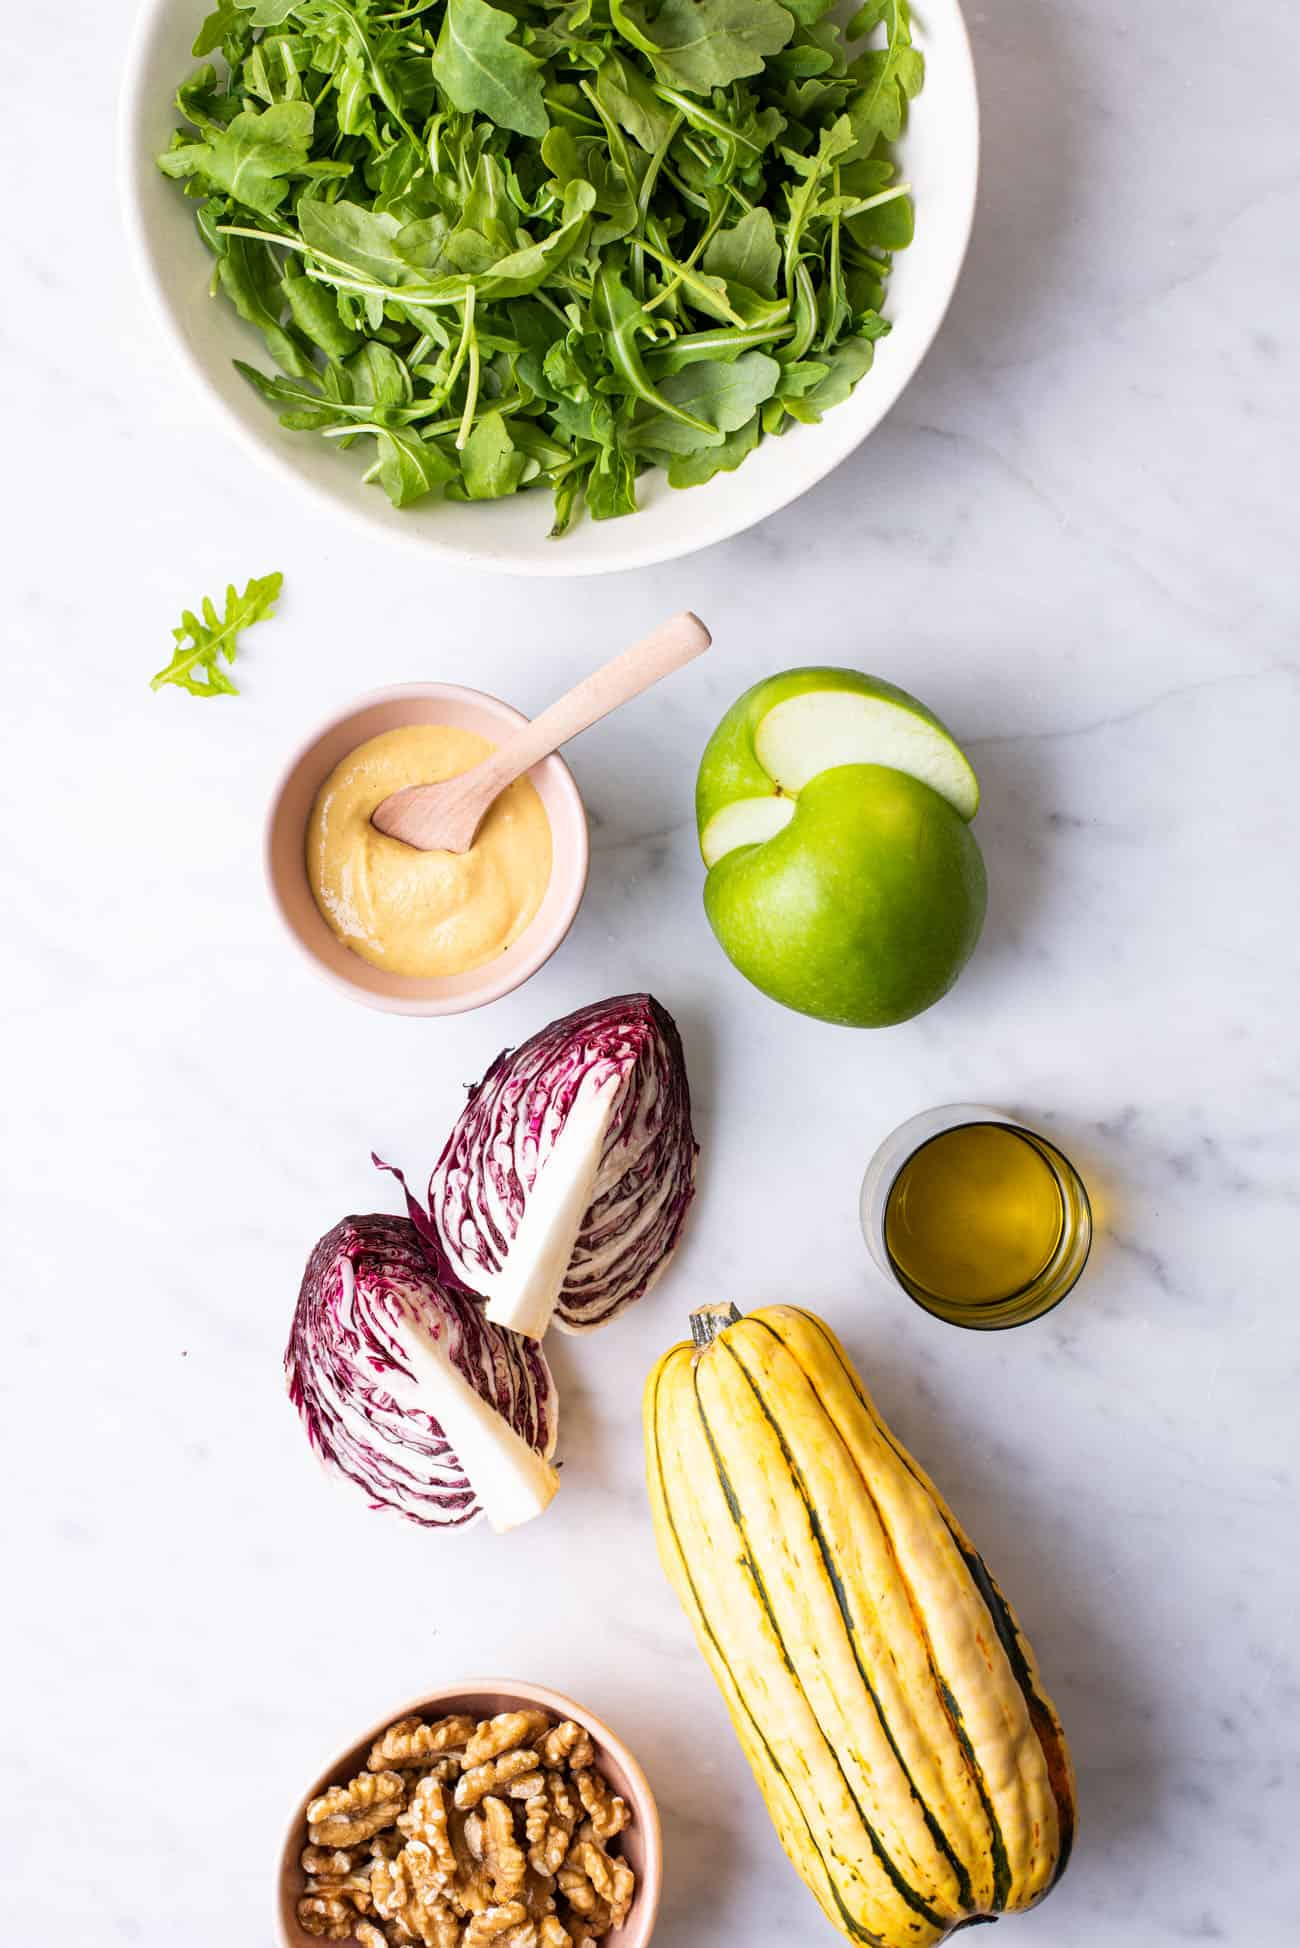 Ingredients to make a Thanksgiving salad arranged on a marble counter: arugula, radicchio, apple, delicata squash, mustard, and walnuts